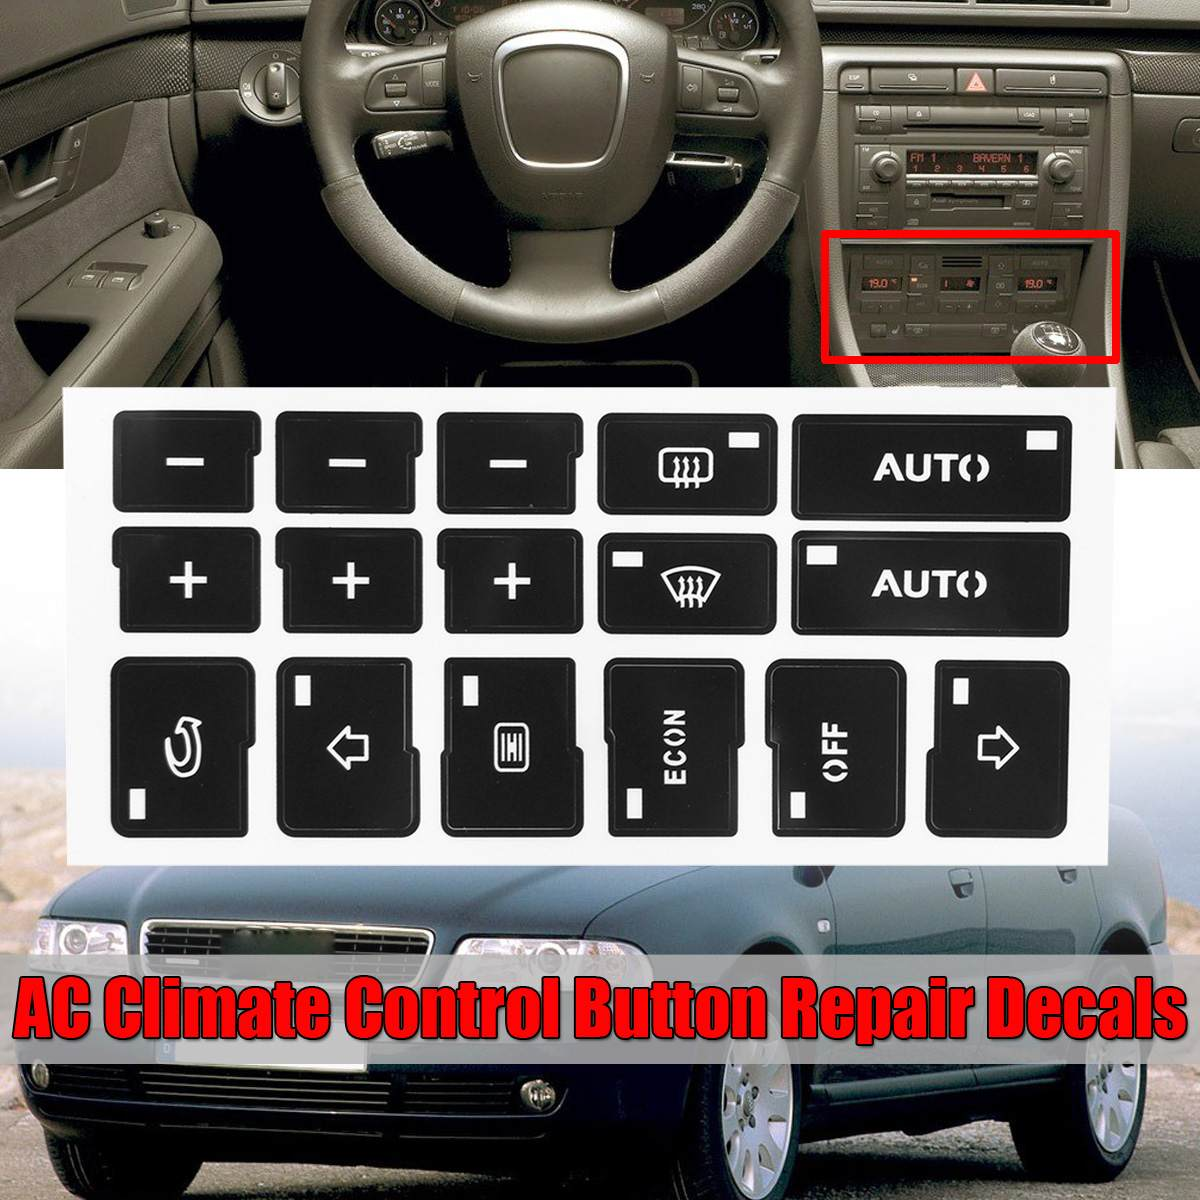 1x Car Air Condition AC Climate Control Button Repair